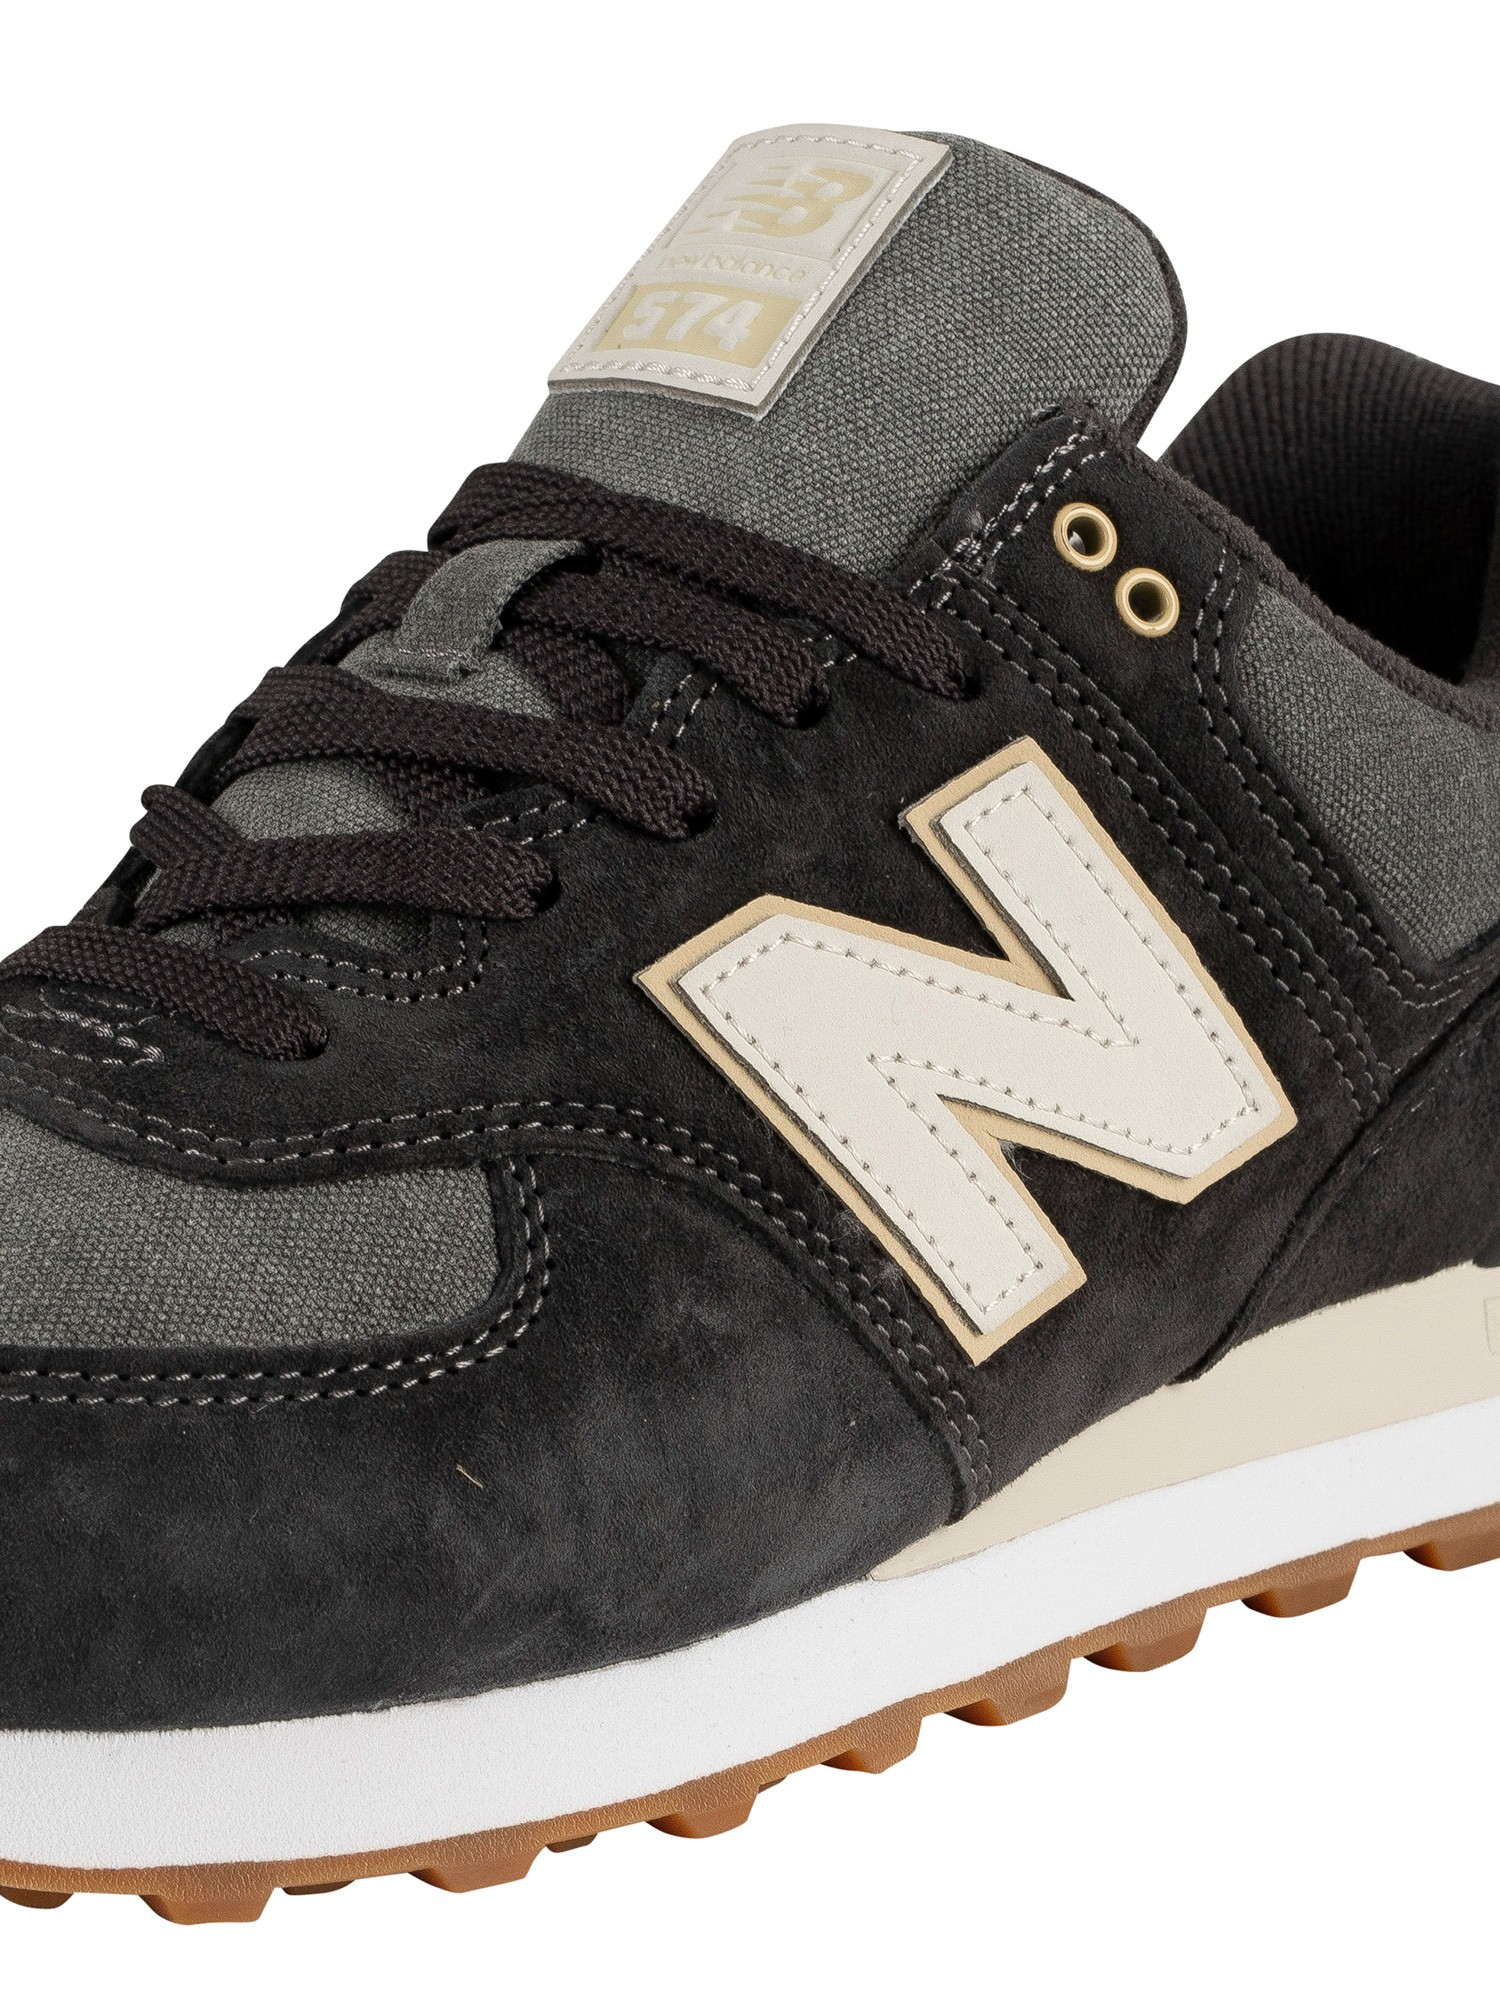 timeless design 90604 140db New Balance 574 Suede Trainers - Black/Grey